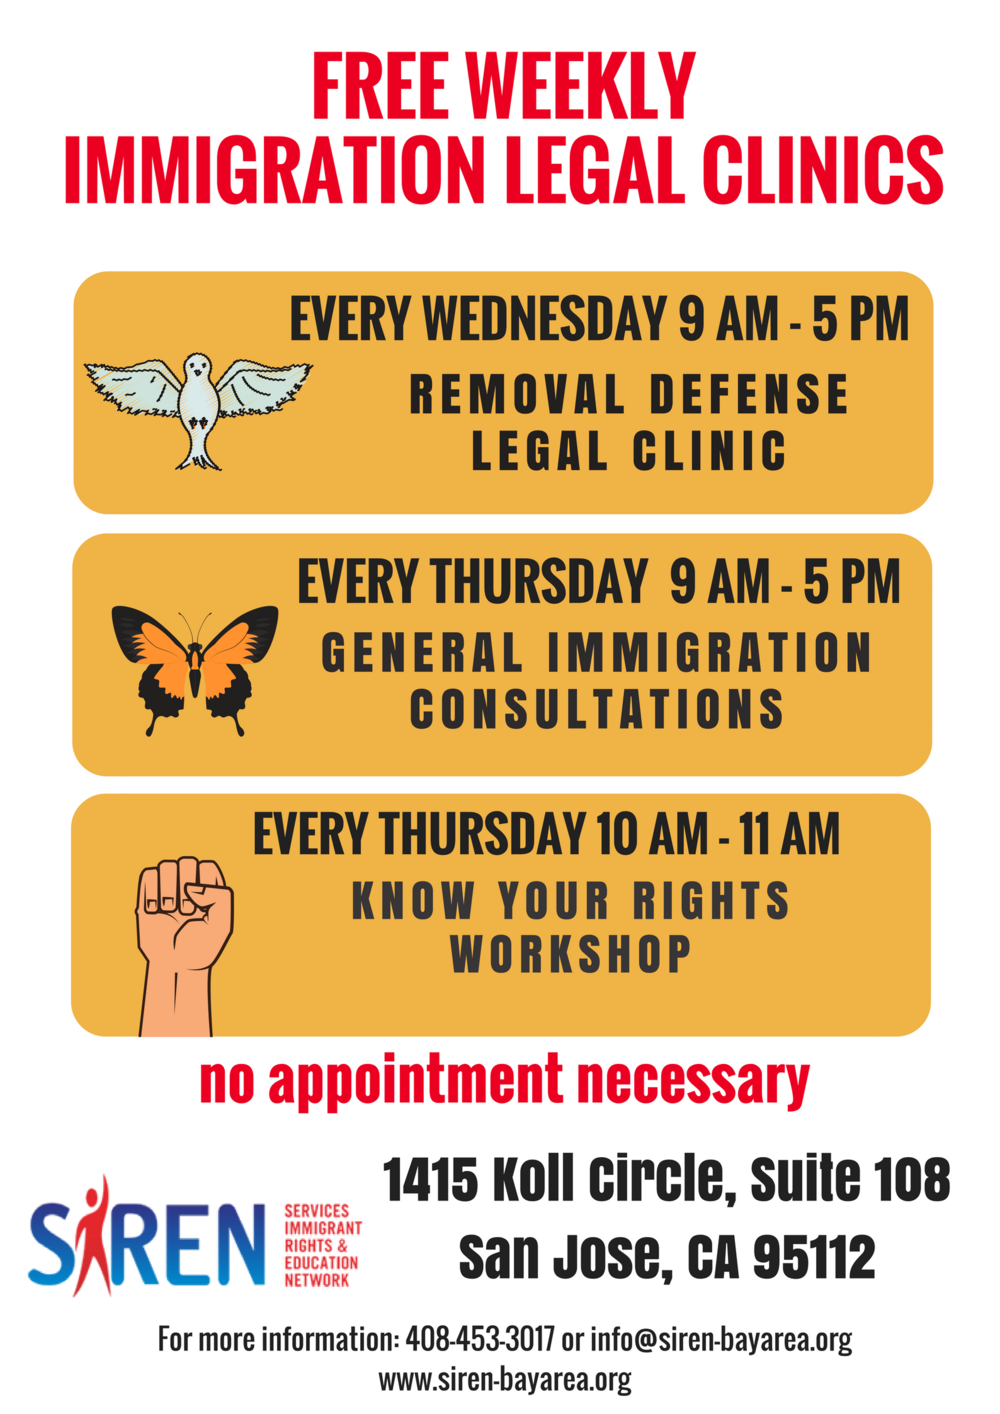 immigration-free-legal-clinics-SIREN.png